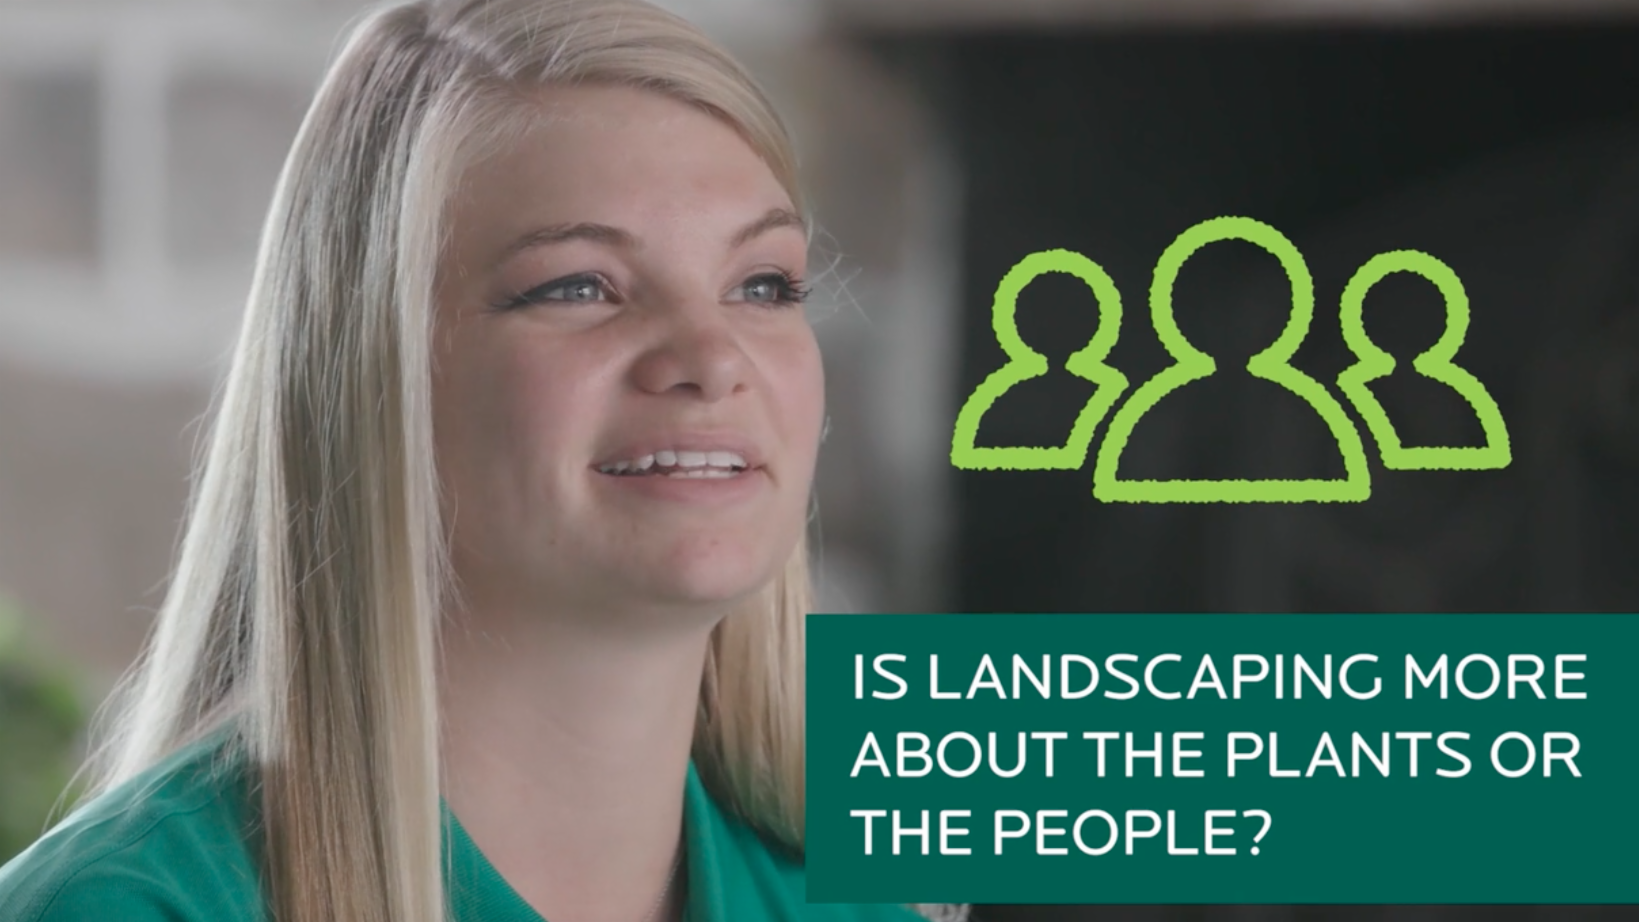 Is Landscaping More about the Plants or the People? - Landscape Career Videos